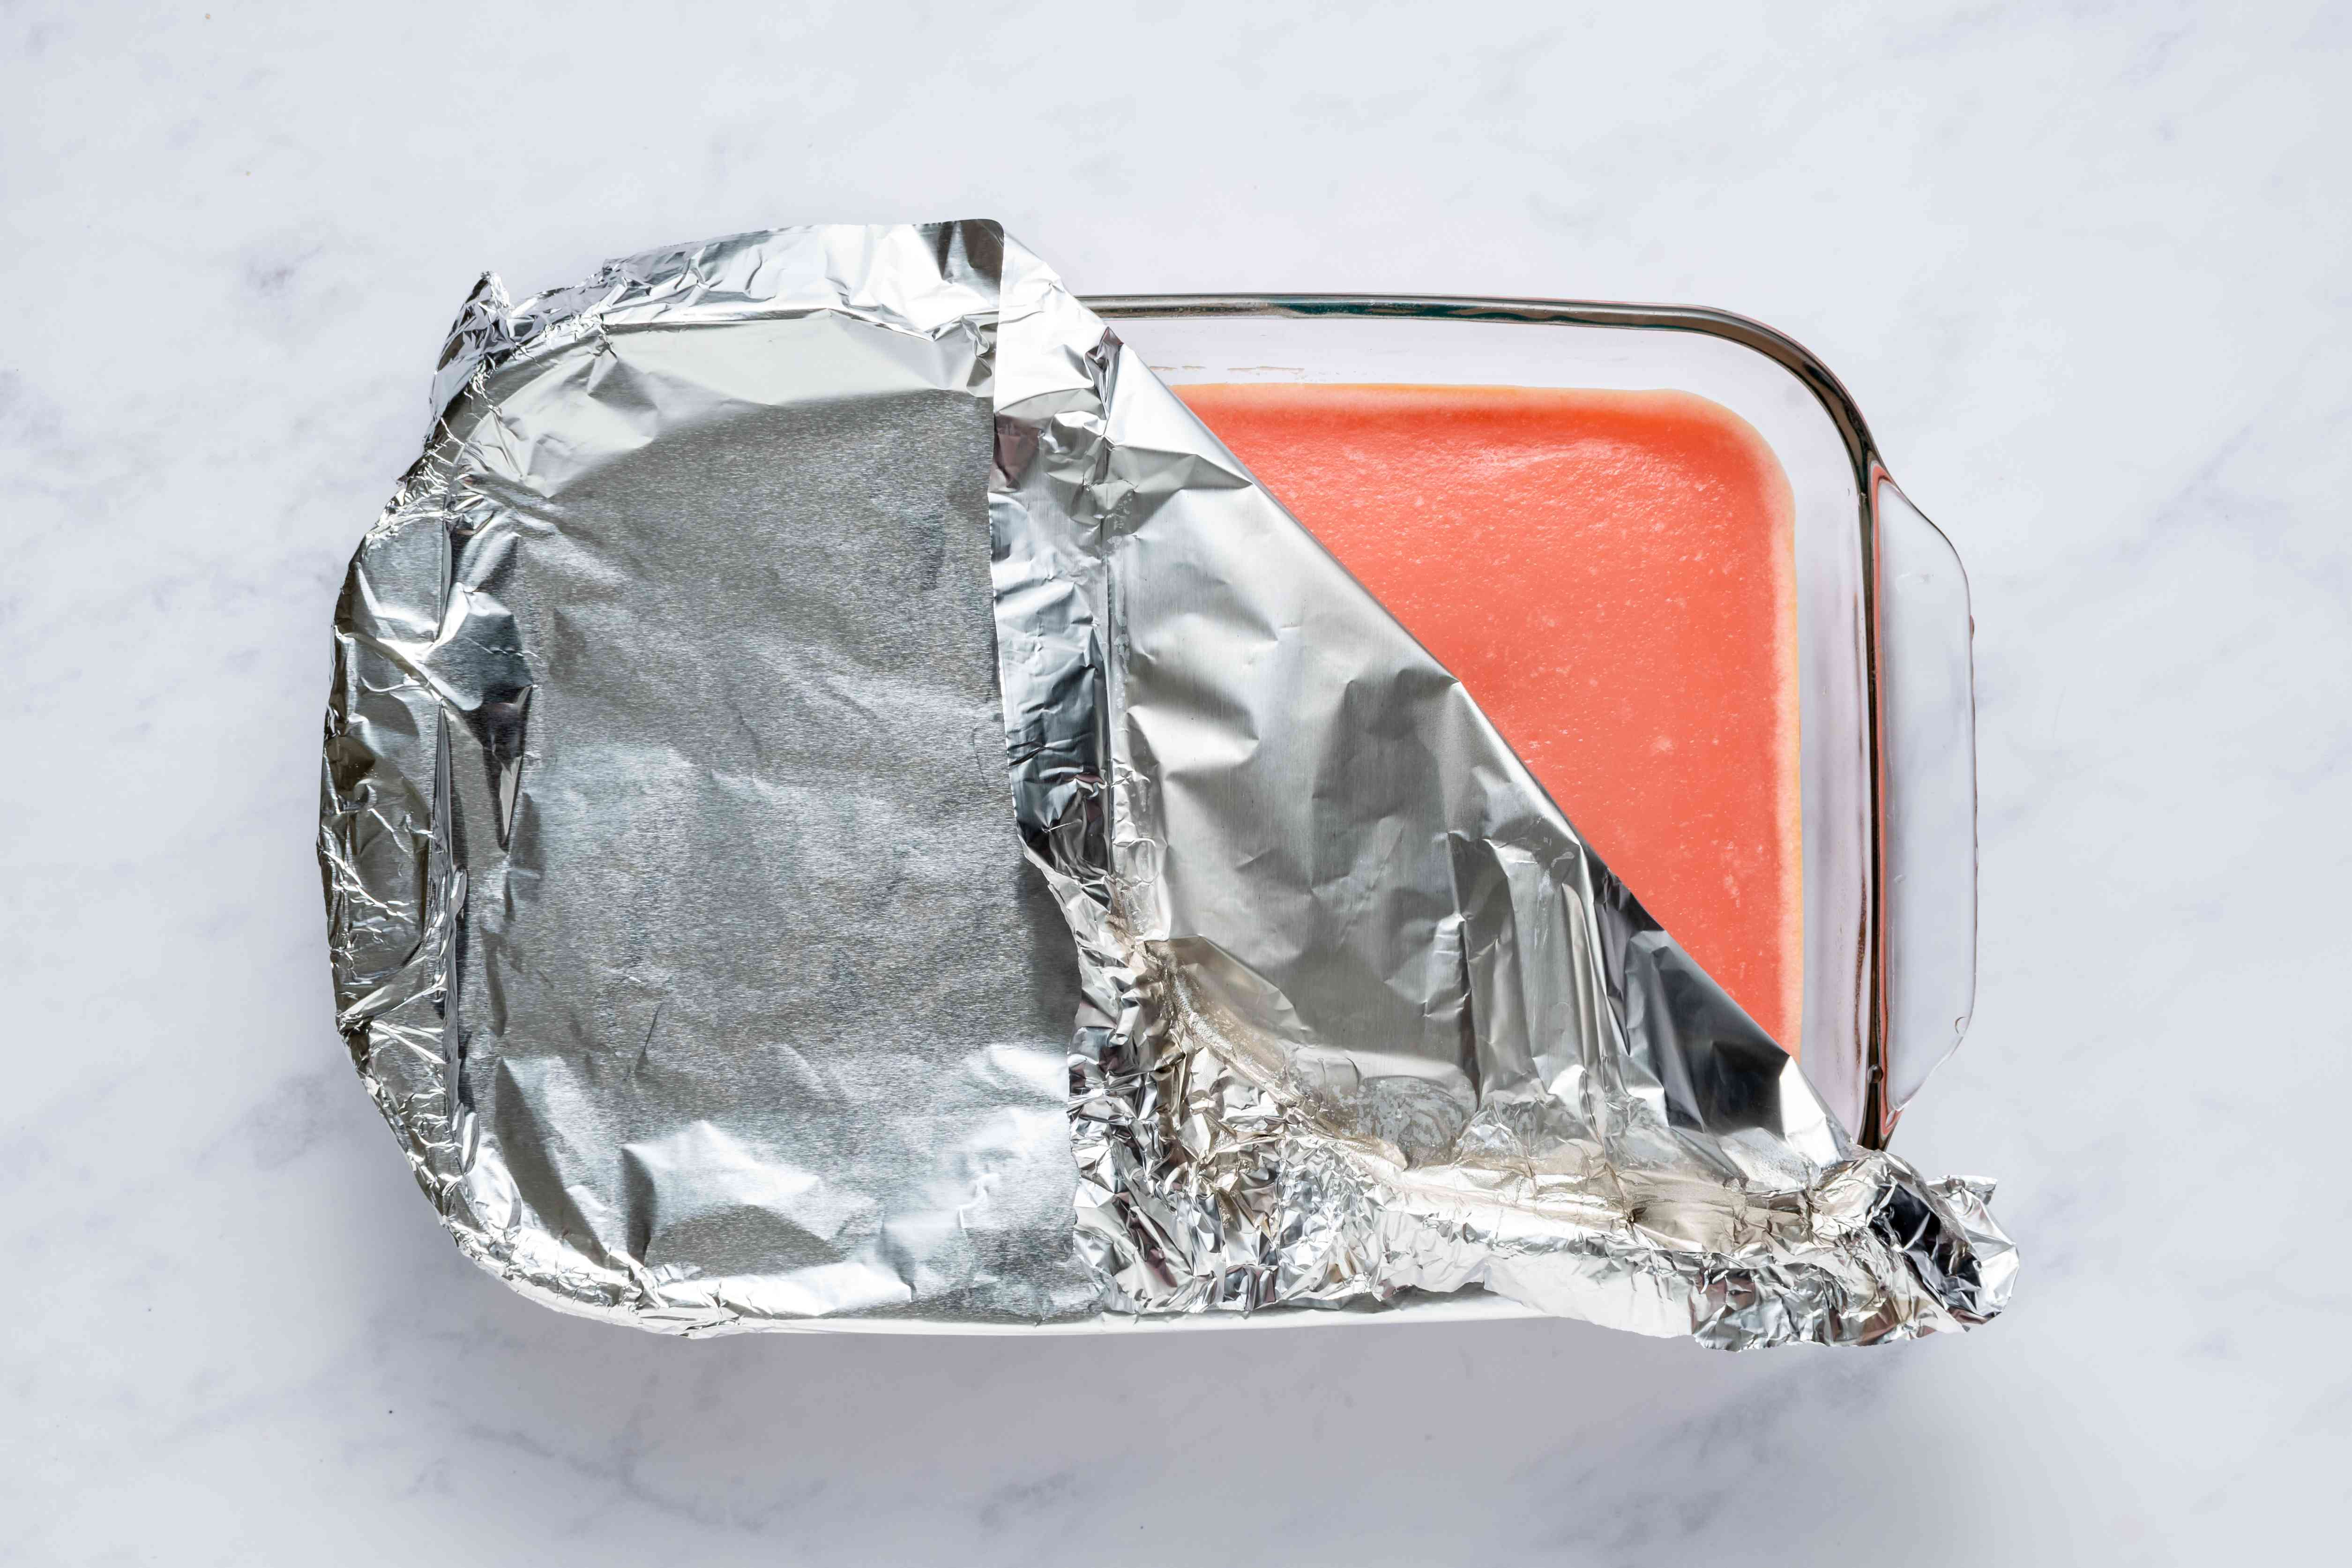 mochiko mixture in a baking dish covered with aluminum foil